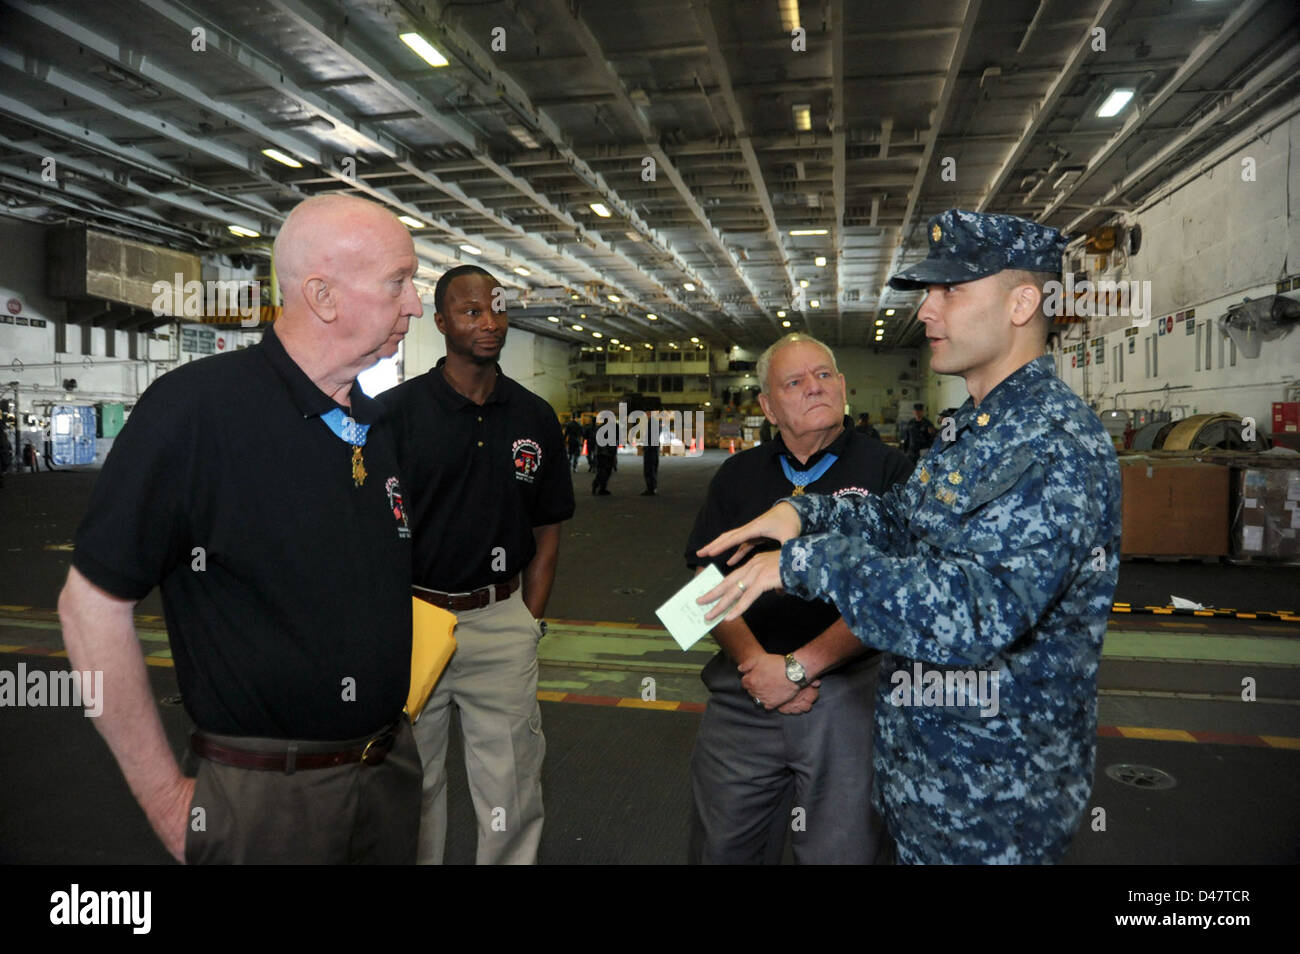 Medal of Honor recipients former U.S. Army Staff Sergeant Don Jenkins, left, and retired U.S. Army Sergeant Major Kenneth Stumpf tour the Japan-based aircraft carrier USS George Washington. Stock Photo